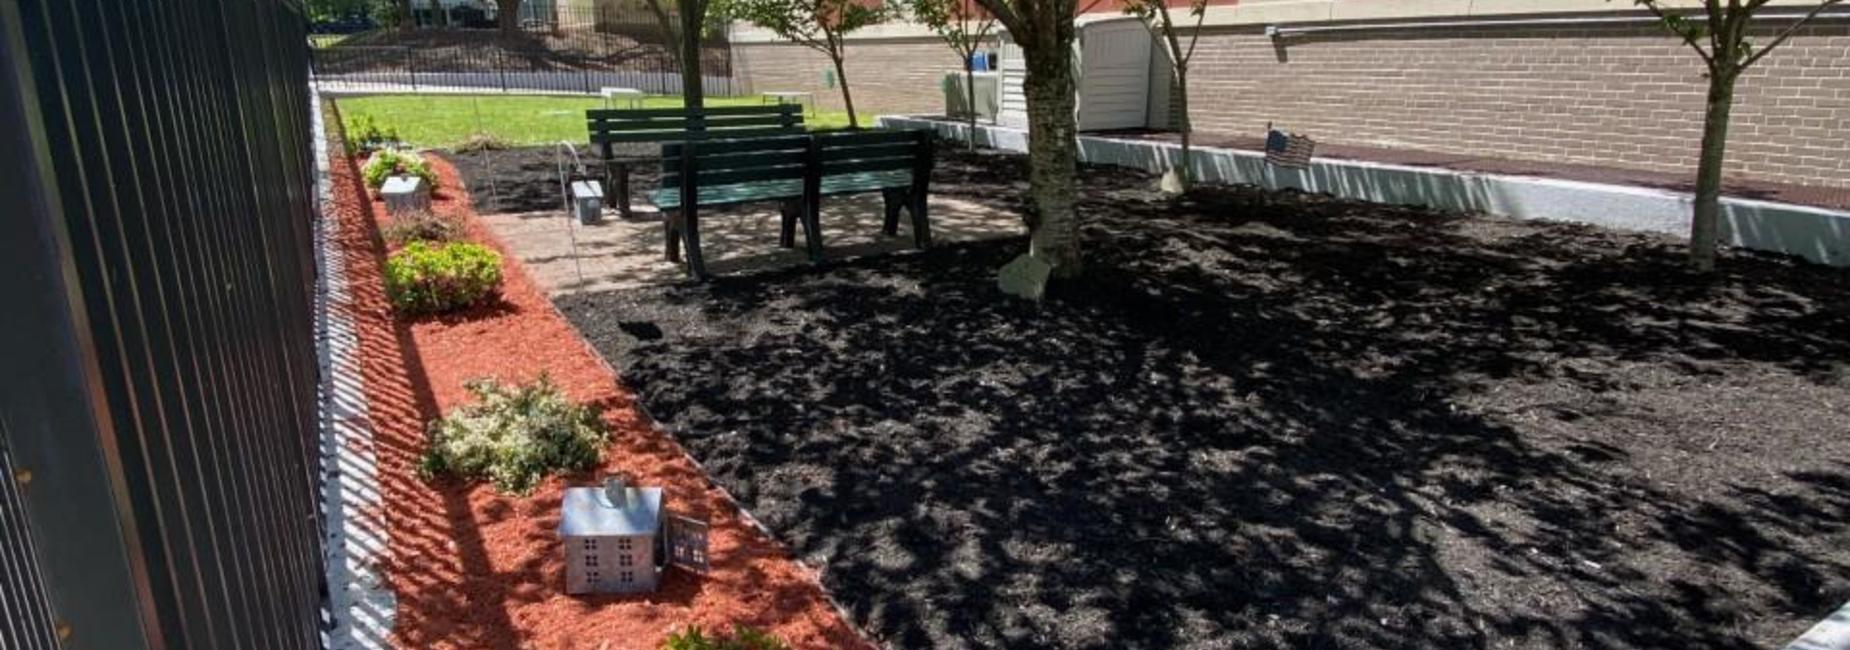 Reading garden with green benches, bushes and orange mulch